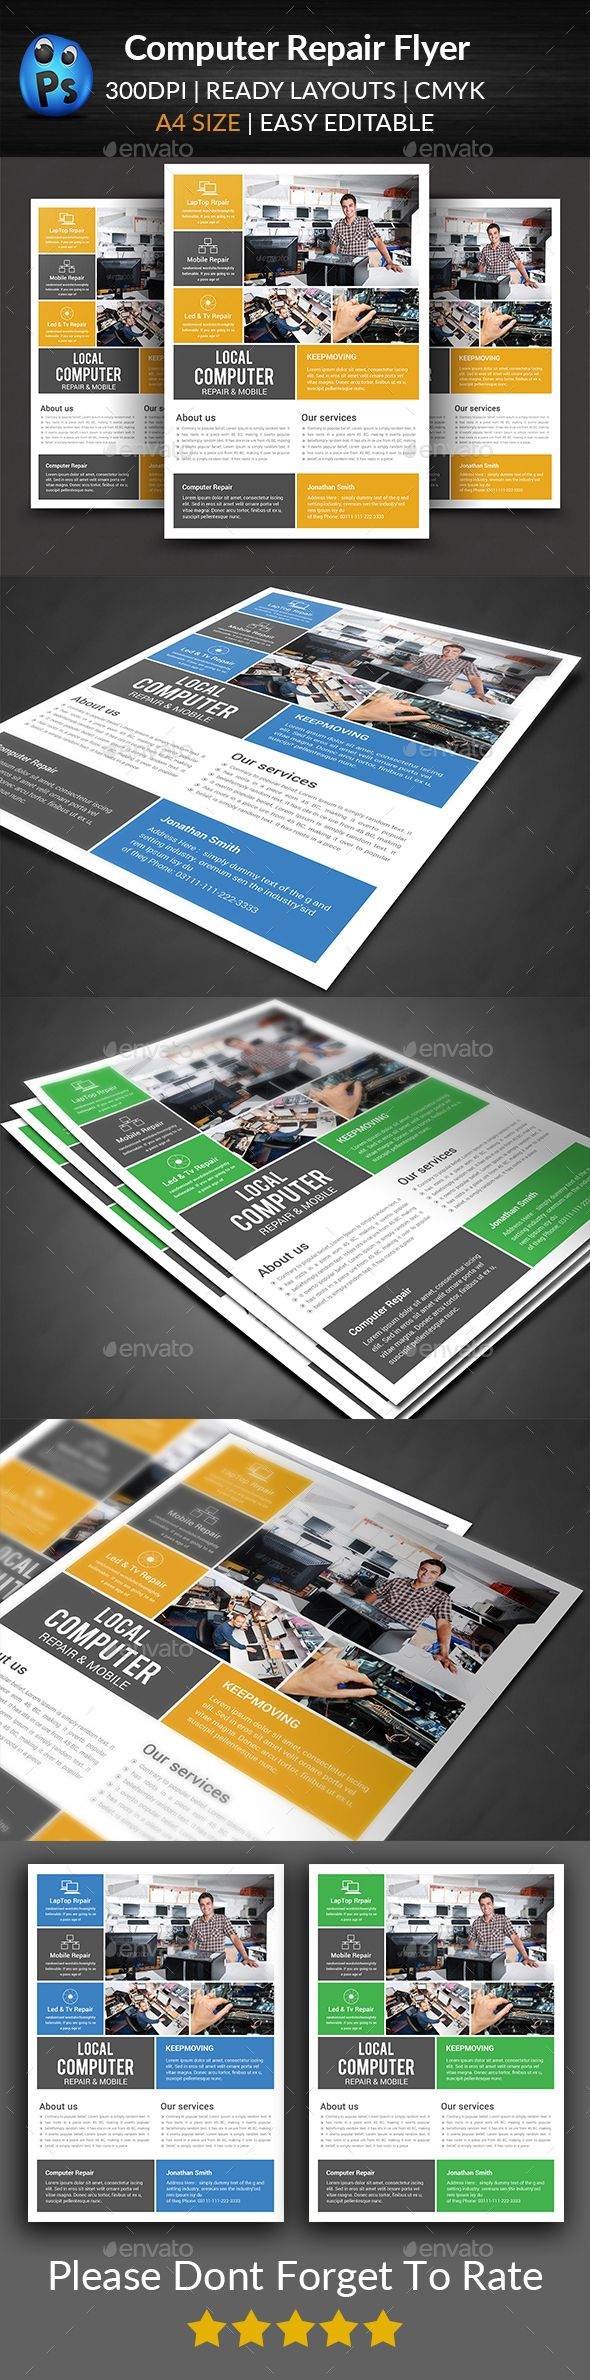 Best Flyer Design Images On   Flyer Design Flyers